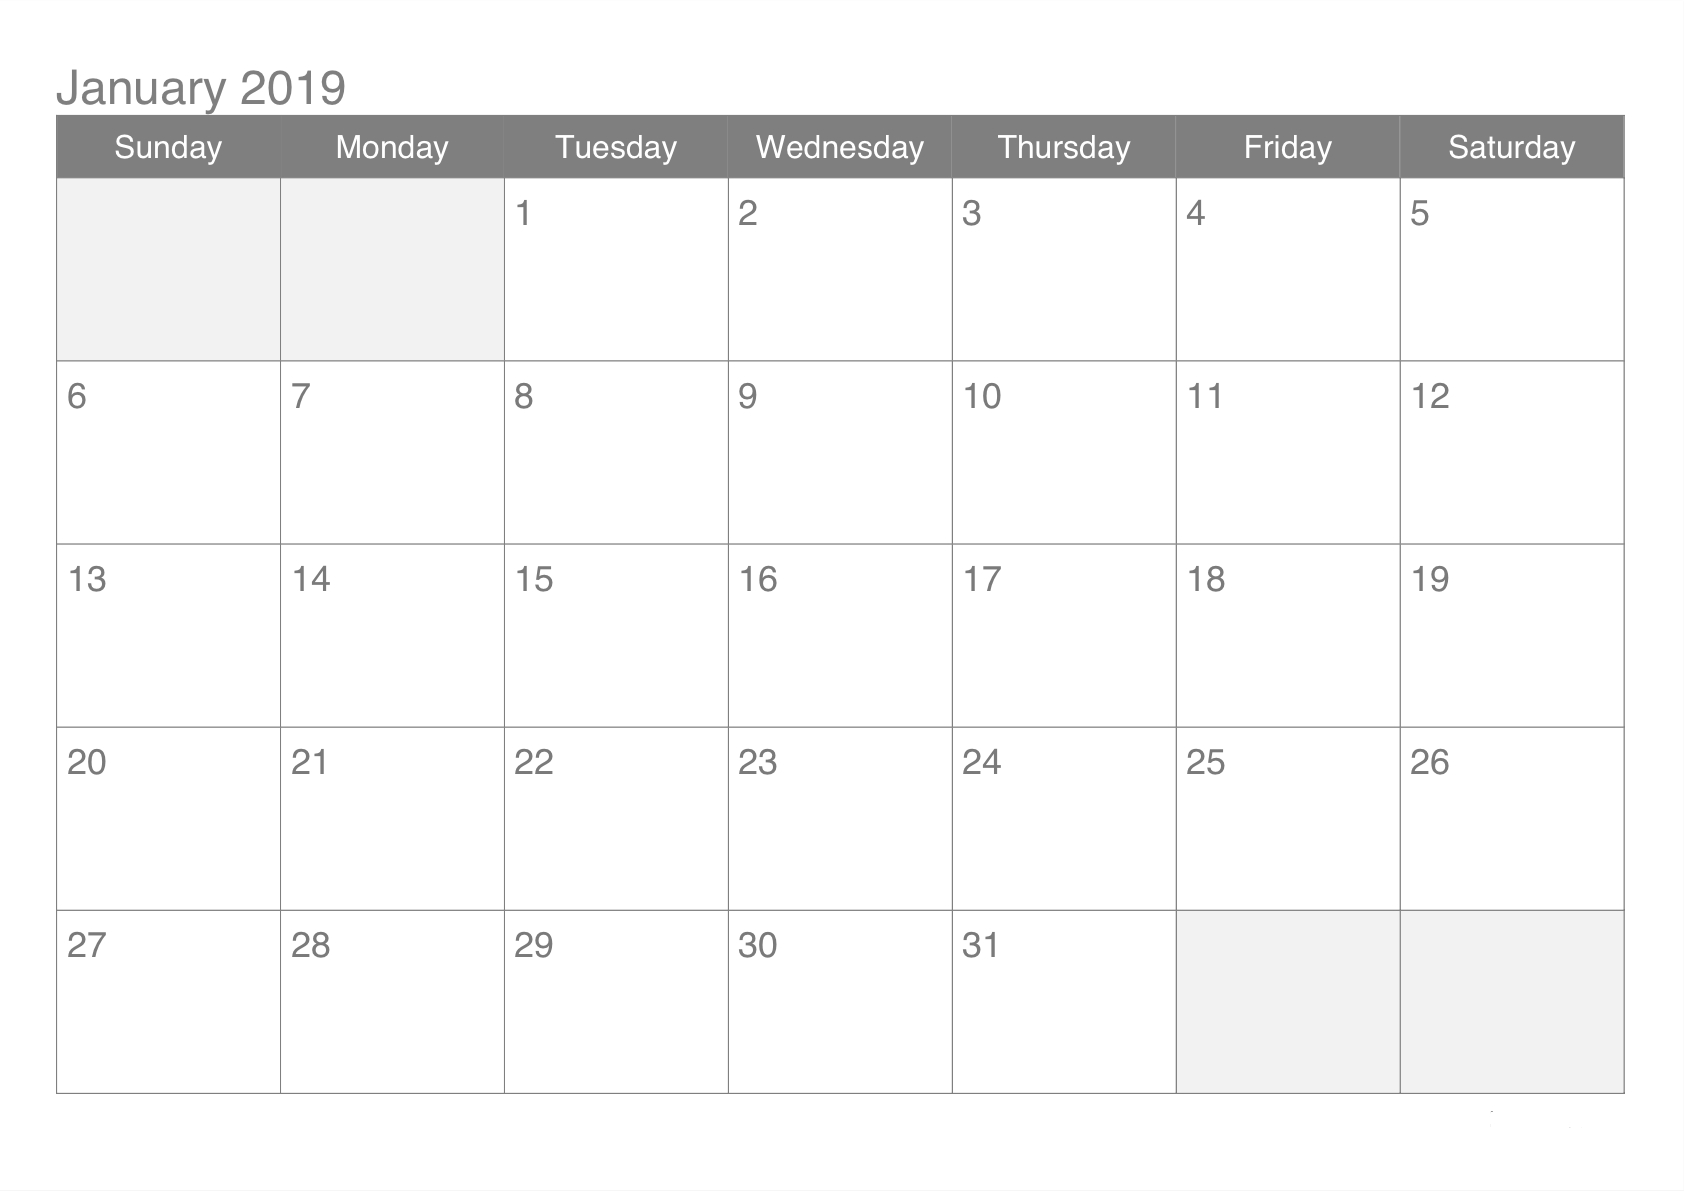 online january 2019 calendar pdf word excel free online calendars::January 2019 Calendar Word